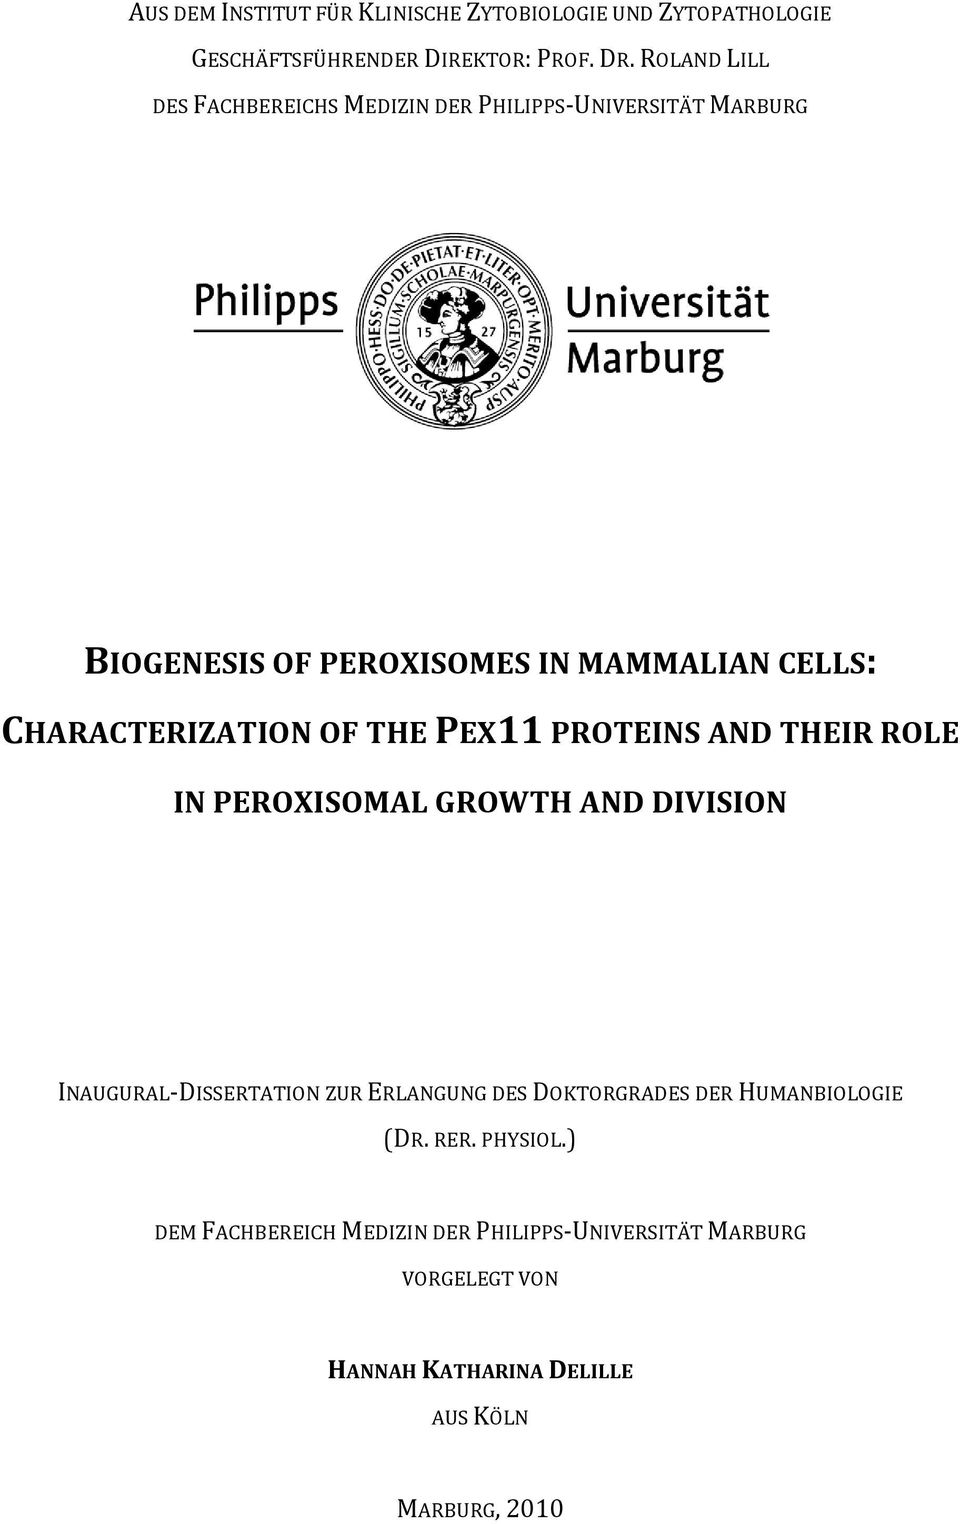 CHARACTERIZATION OF THE PEX11 PROTEINS AND THEIR ROLE IN PEROXISOMAL GROWTH AND DIVISION INAUGURAL-DISSERTATION ZUR ERLANGUNG DES